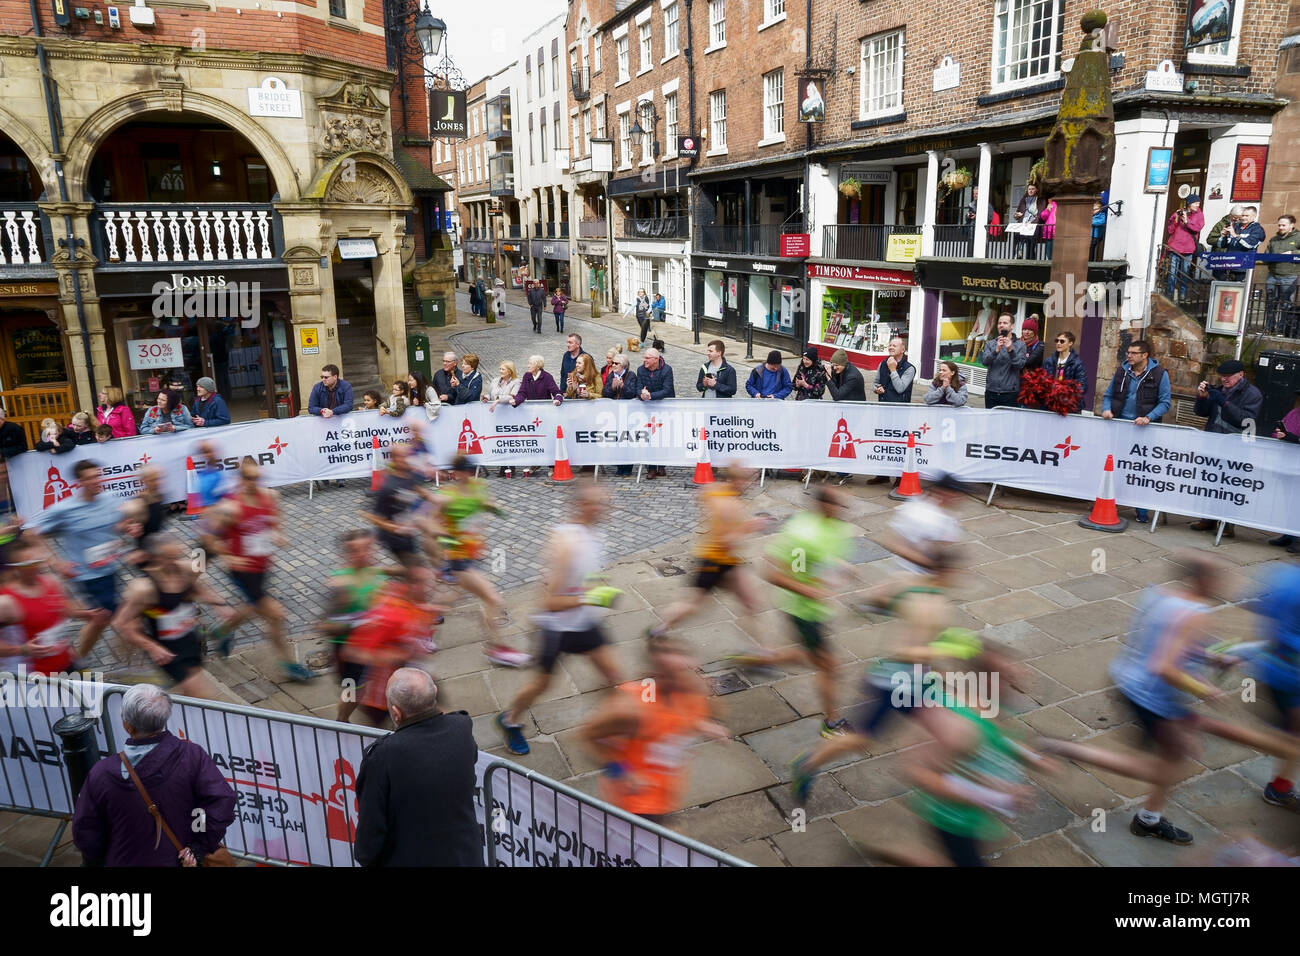 Chester, UK. 29th April 2018. Runners in the early stages of the Essar Chester Half Marathon run through the streets of Chester city centre. Credit: Andrew Paterson/Alamy Live News - Stock Image